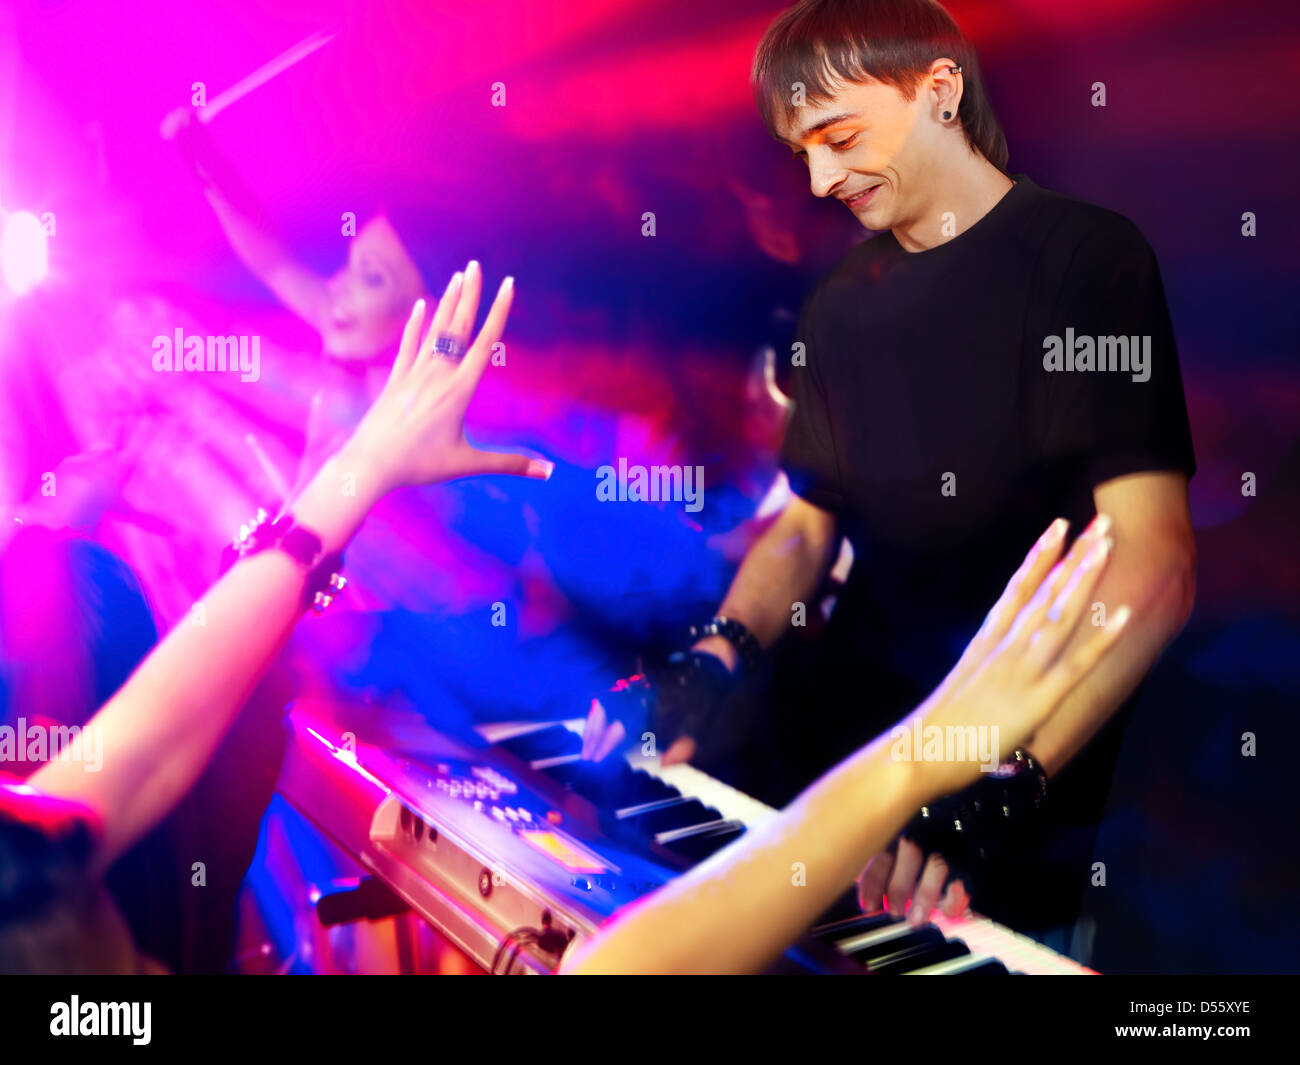 Musical group performance in night club. - Stock Image